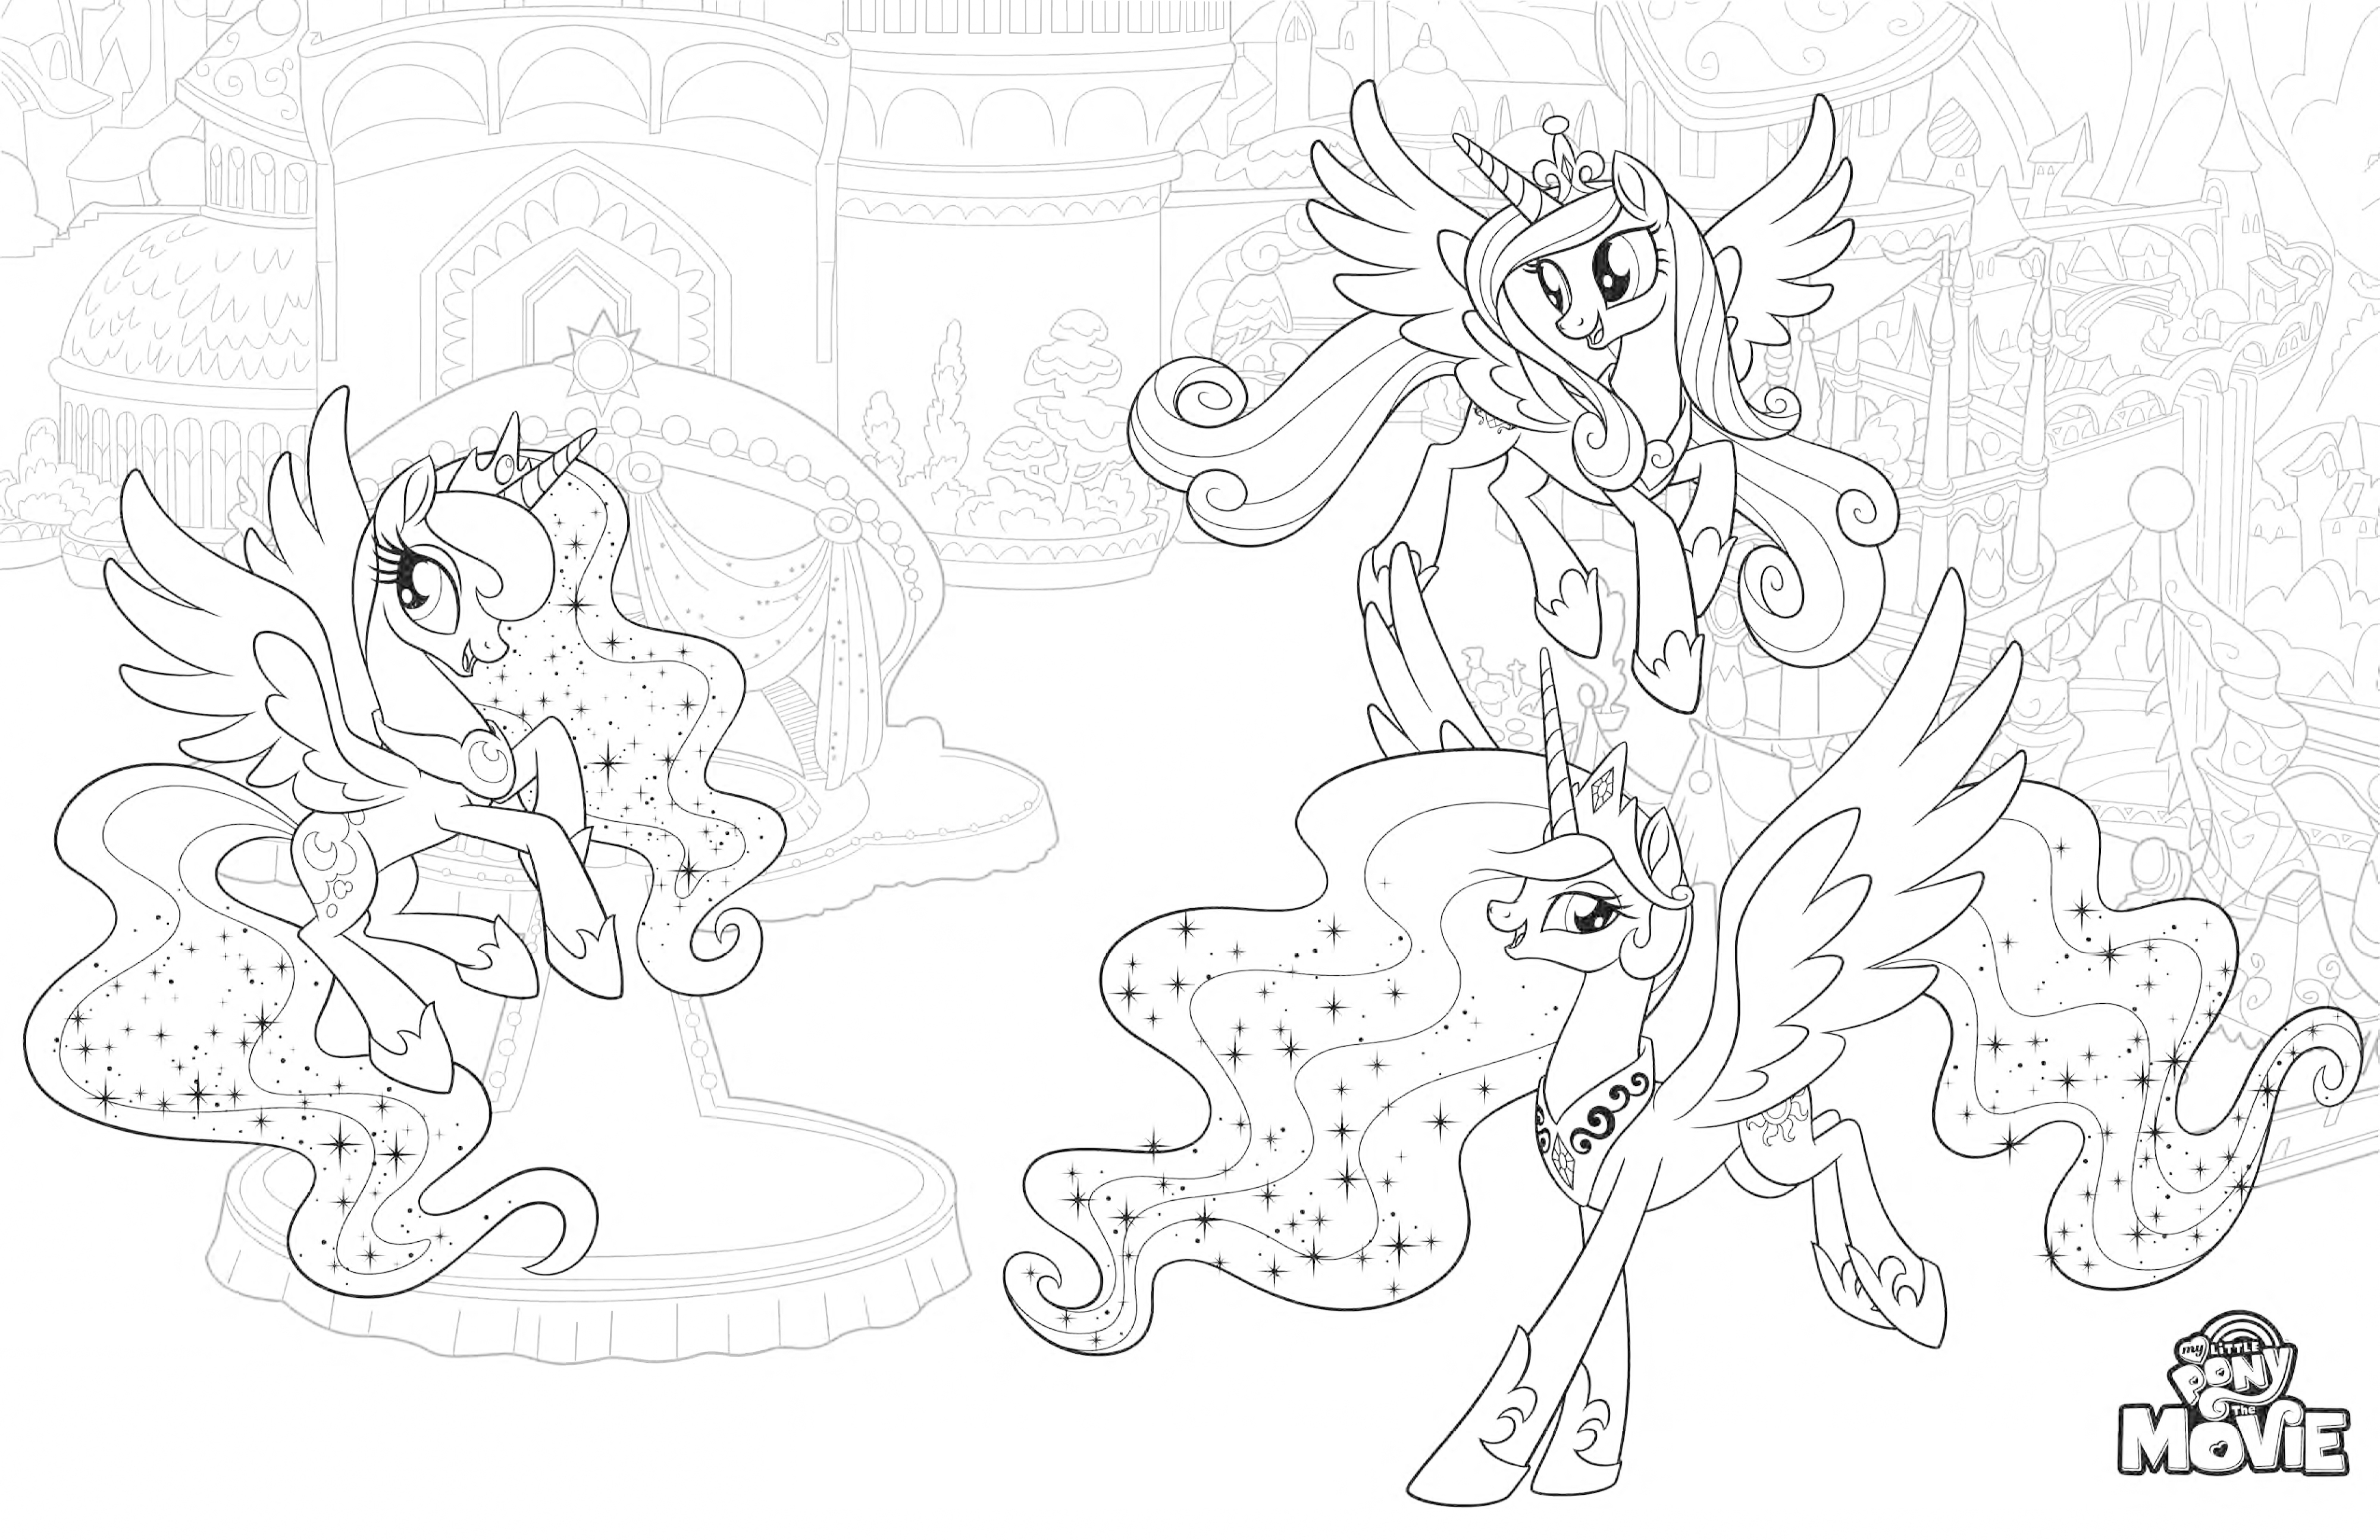 my little pony the movie coloring page with princess ponies luna cadence celestia